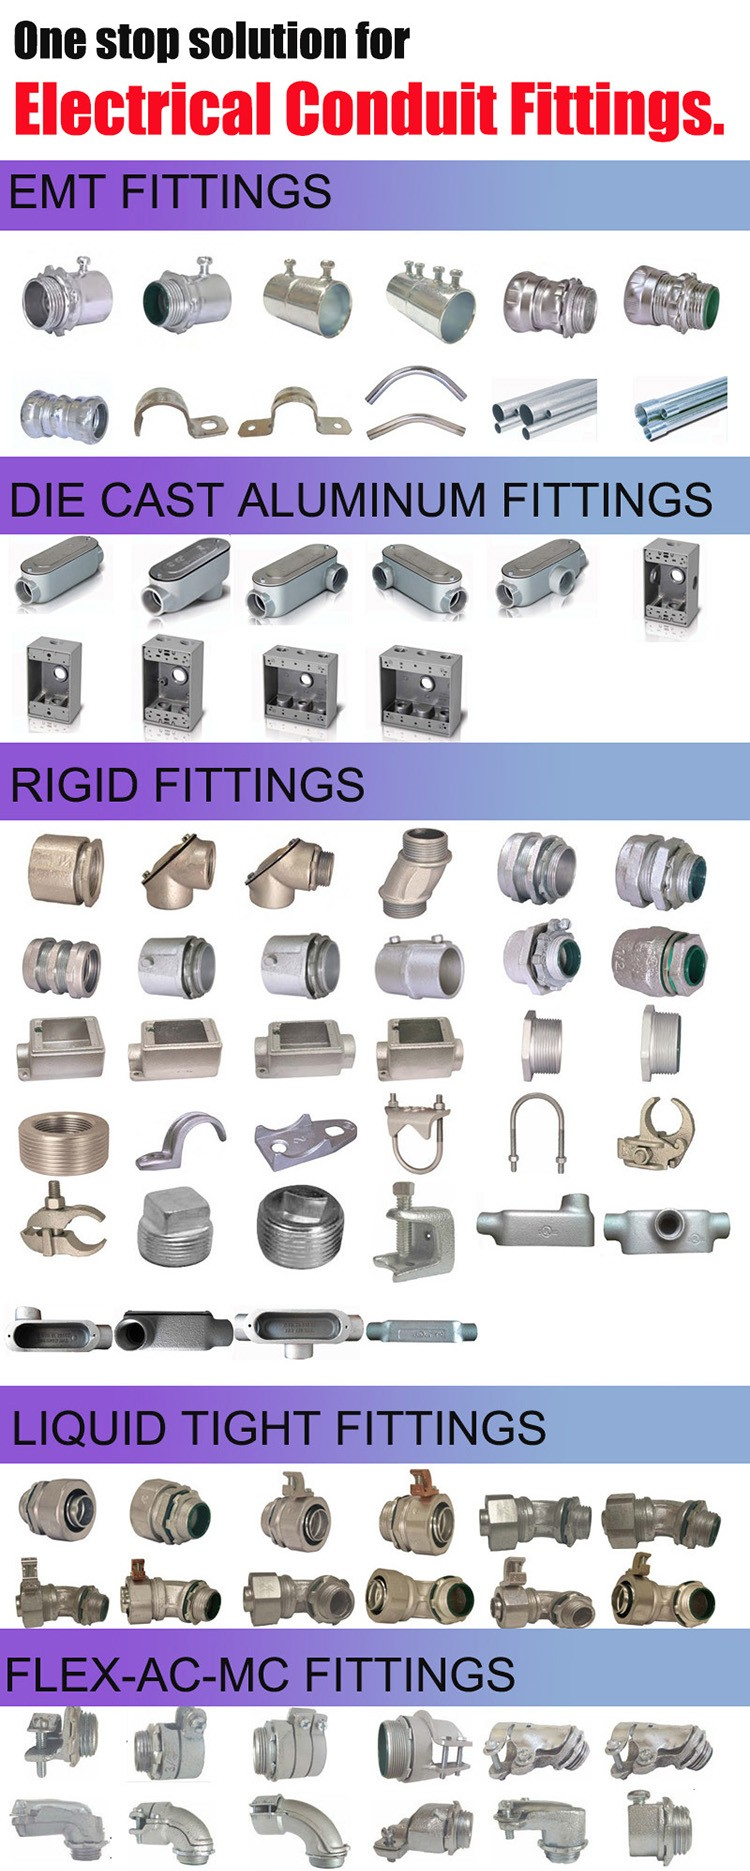 Steel Couplers With Witness Holes : Condulet body buy conduit boddy fittings